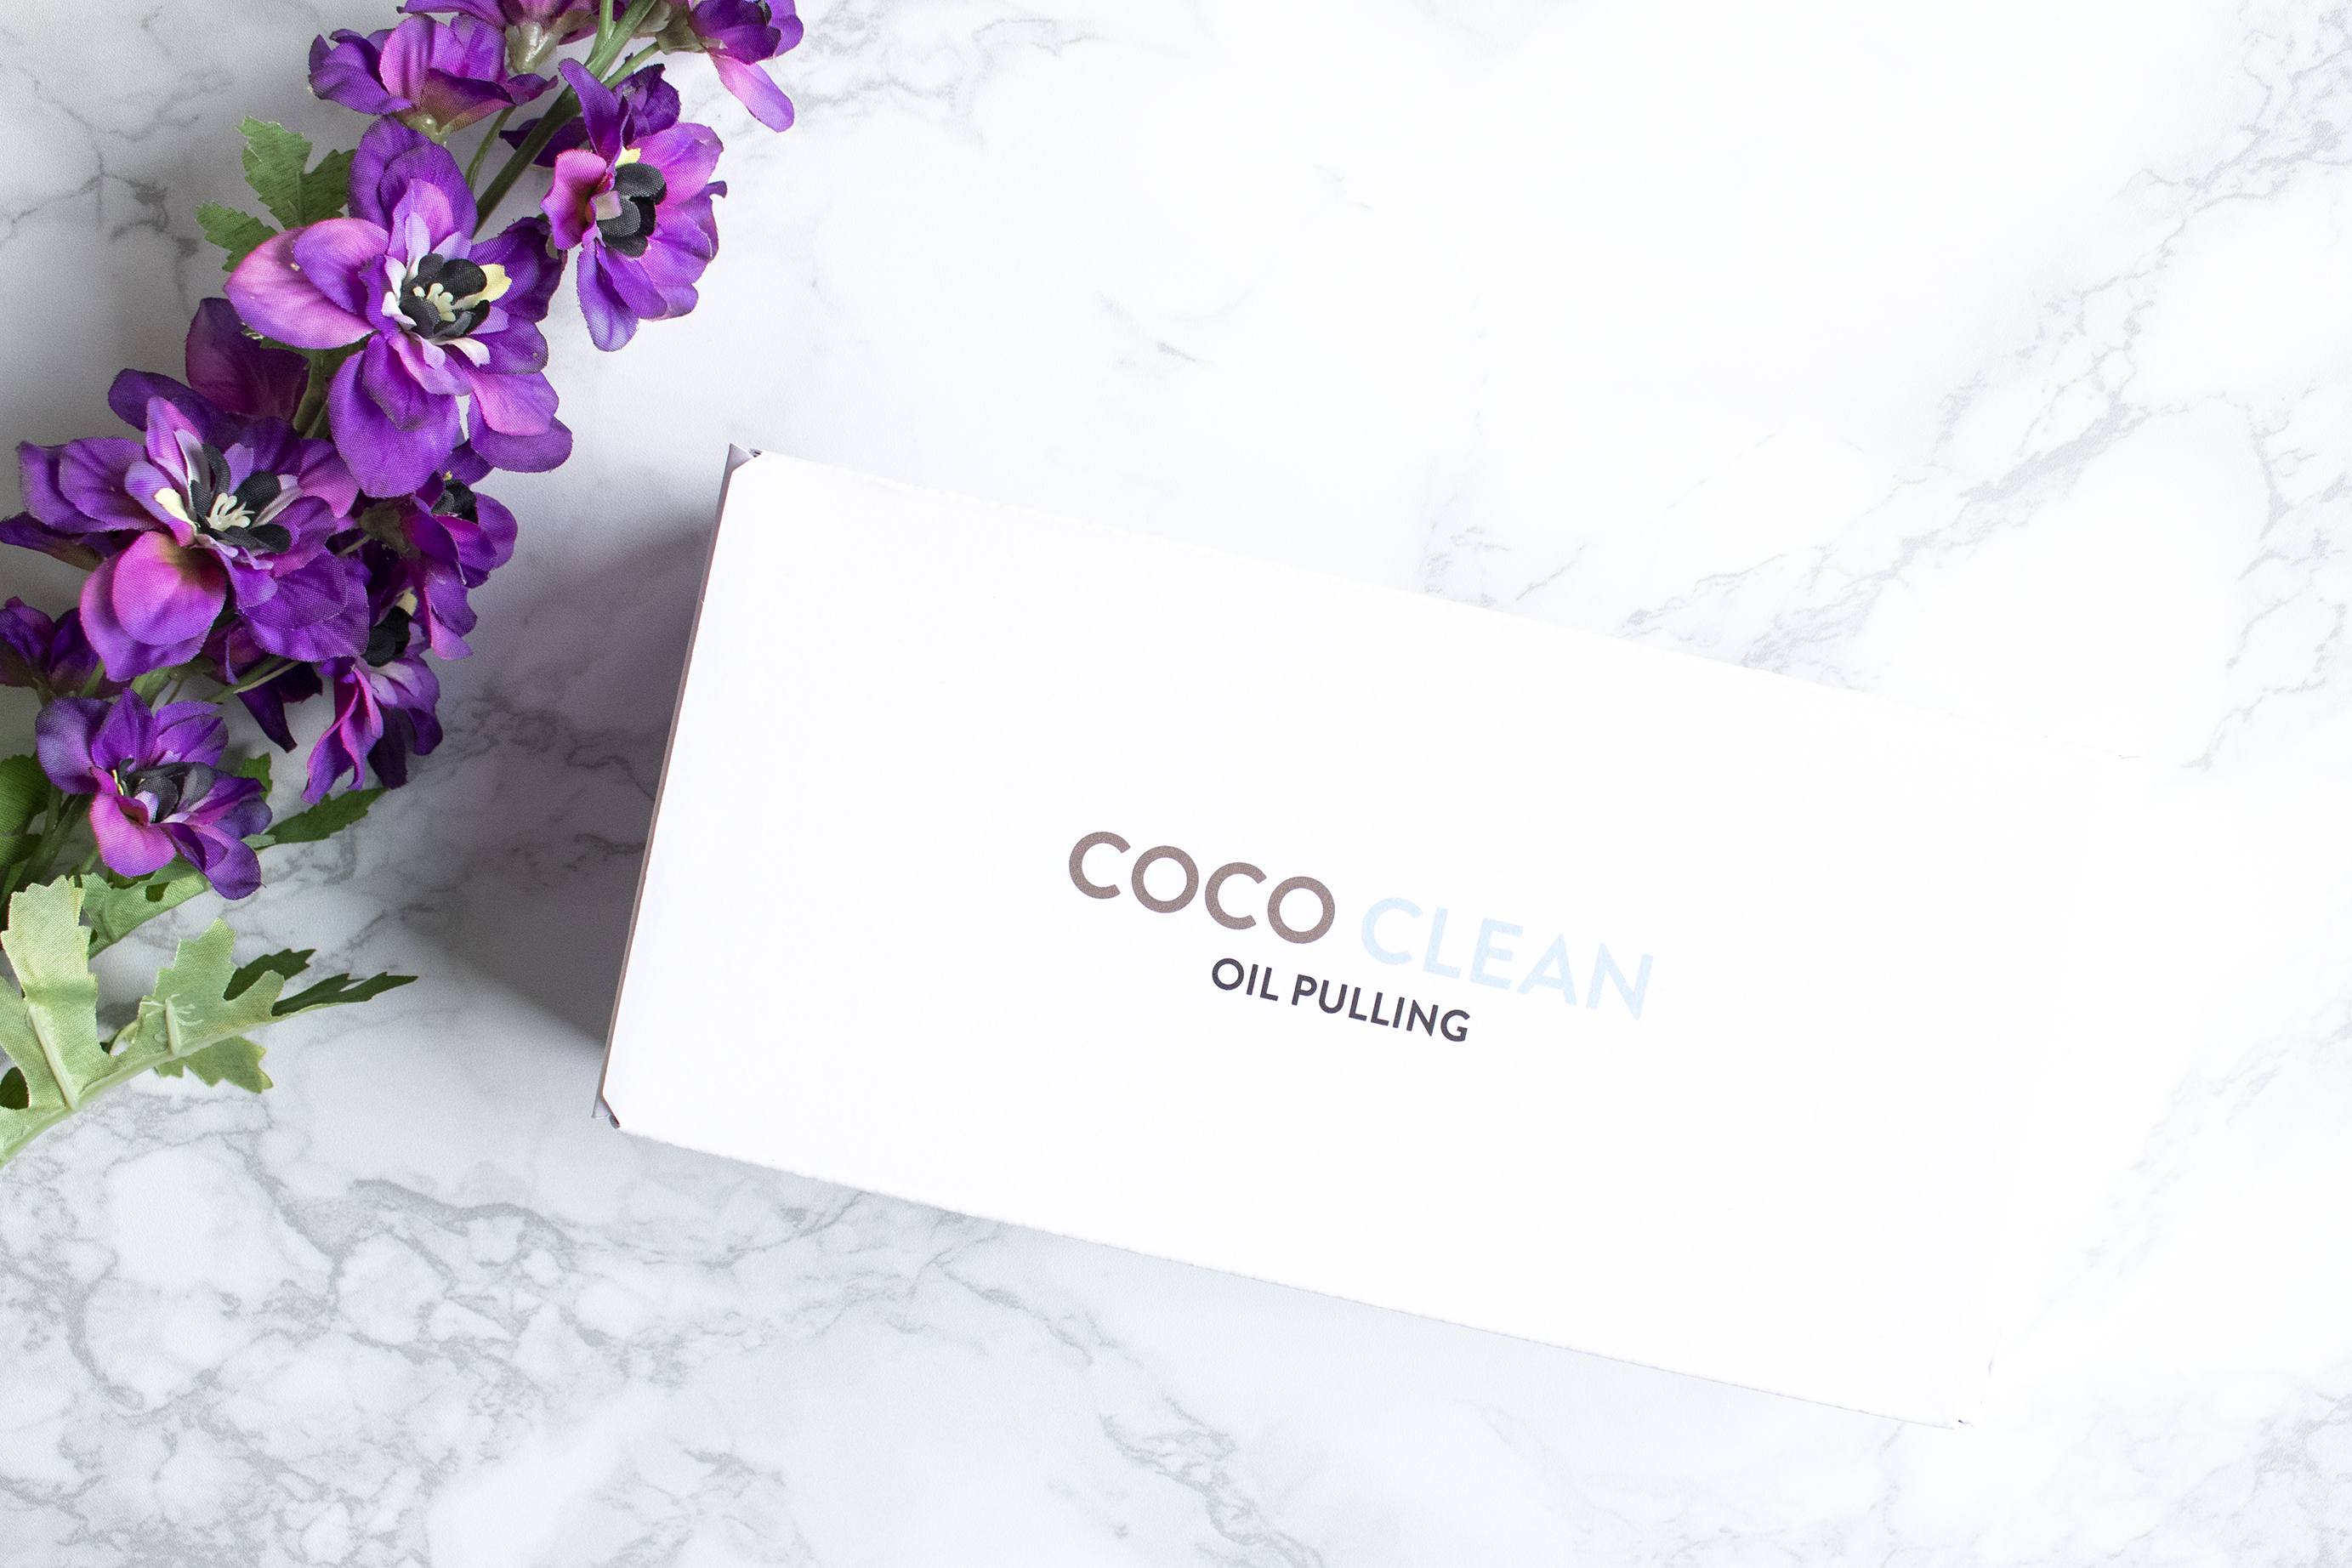 coco clean oil pulling